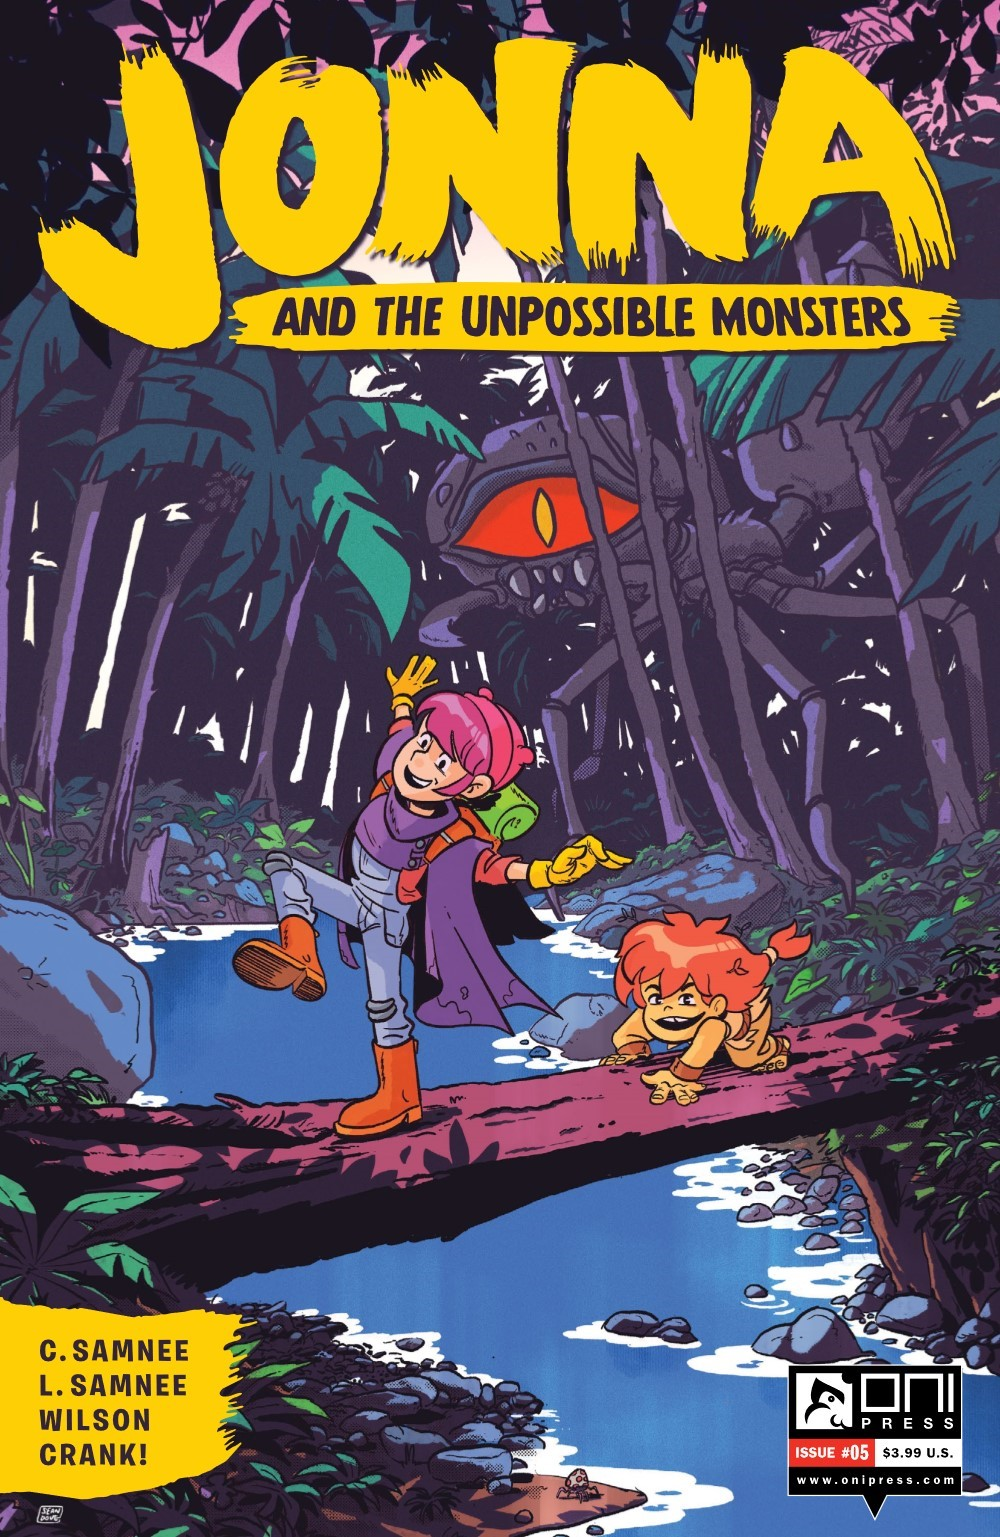 JONNA-5-REFERENCE-02 ComicList Previews: JONNA AND THE UNPOSSIBLE MONSTERS #5